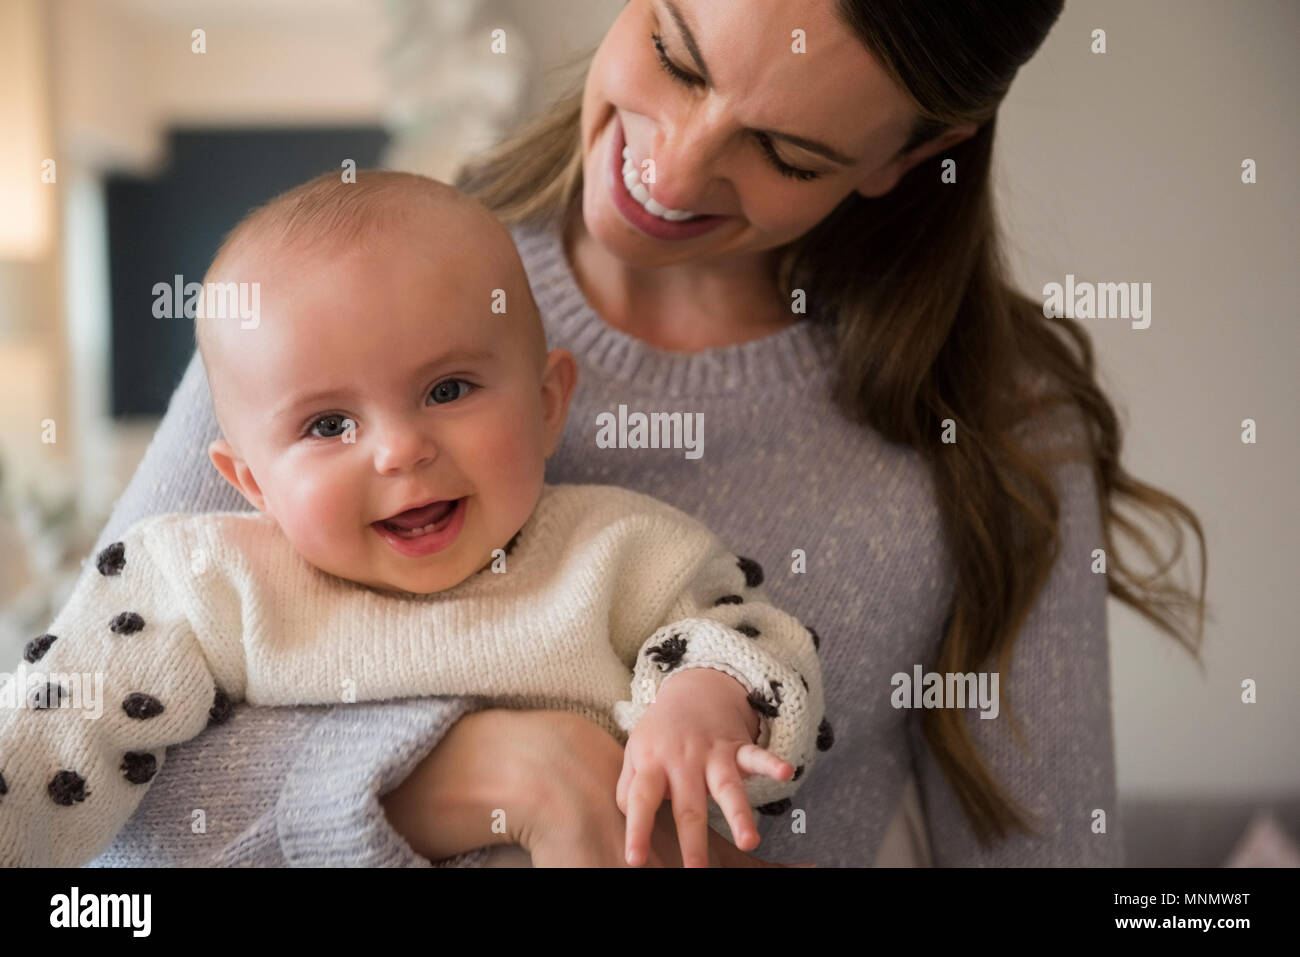 Mother holding baby (18-23 months) - Stock Image